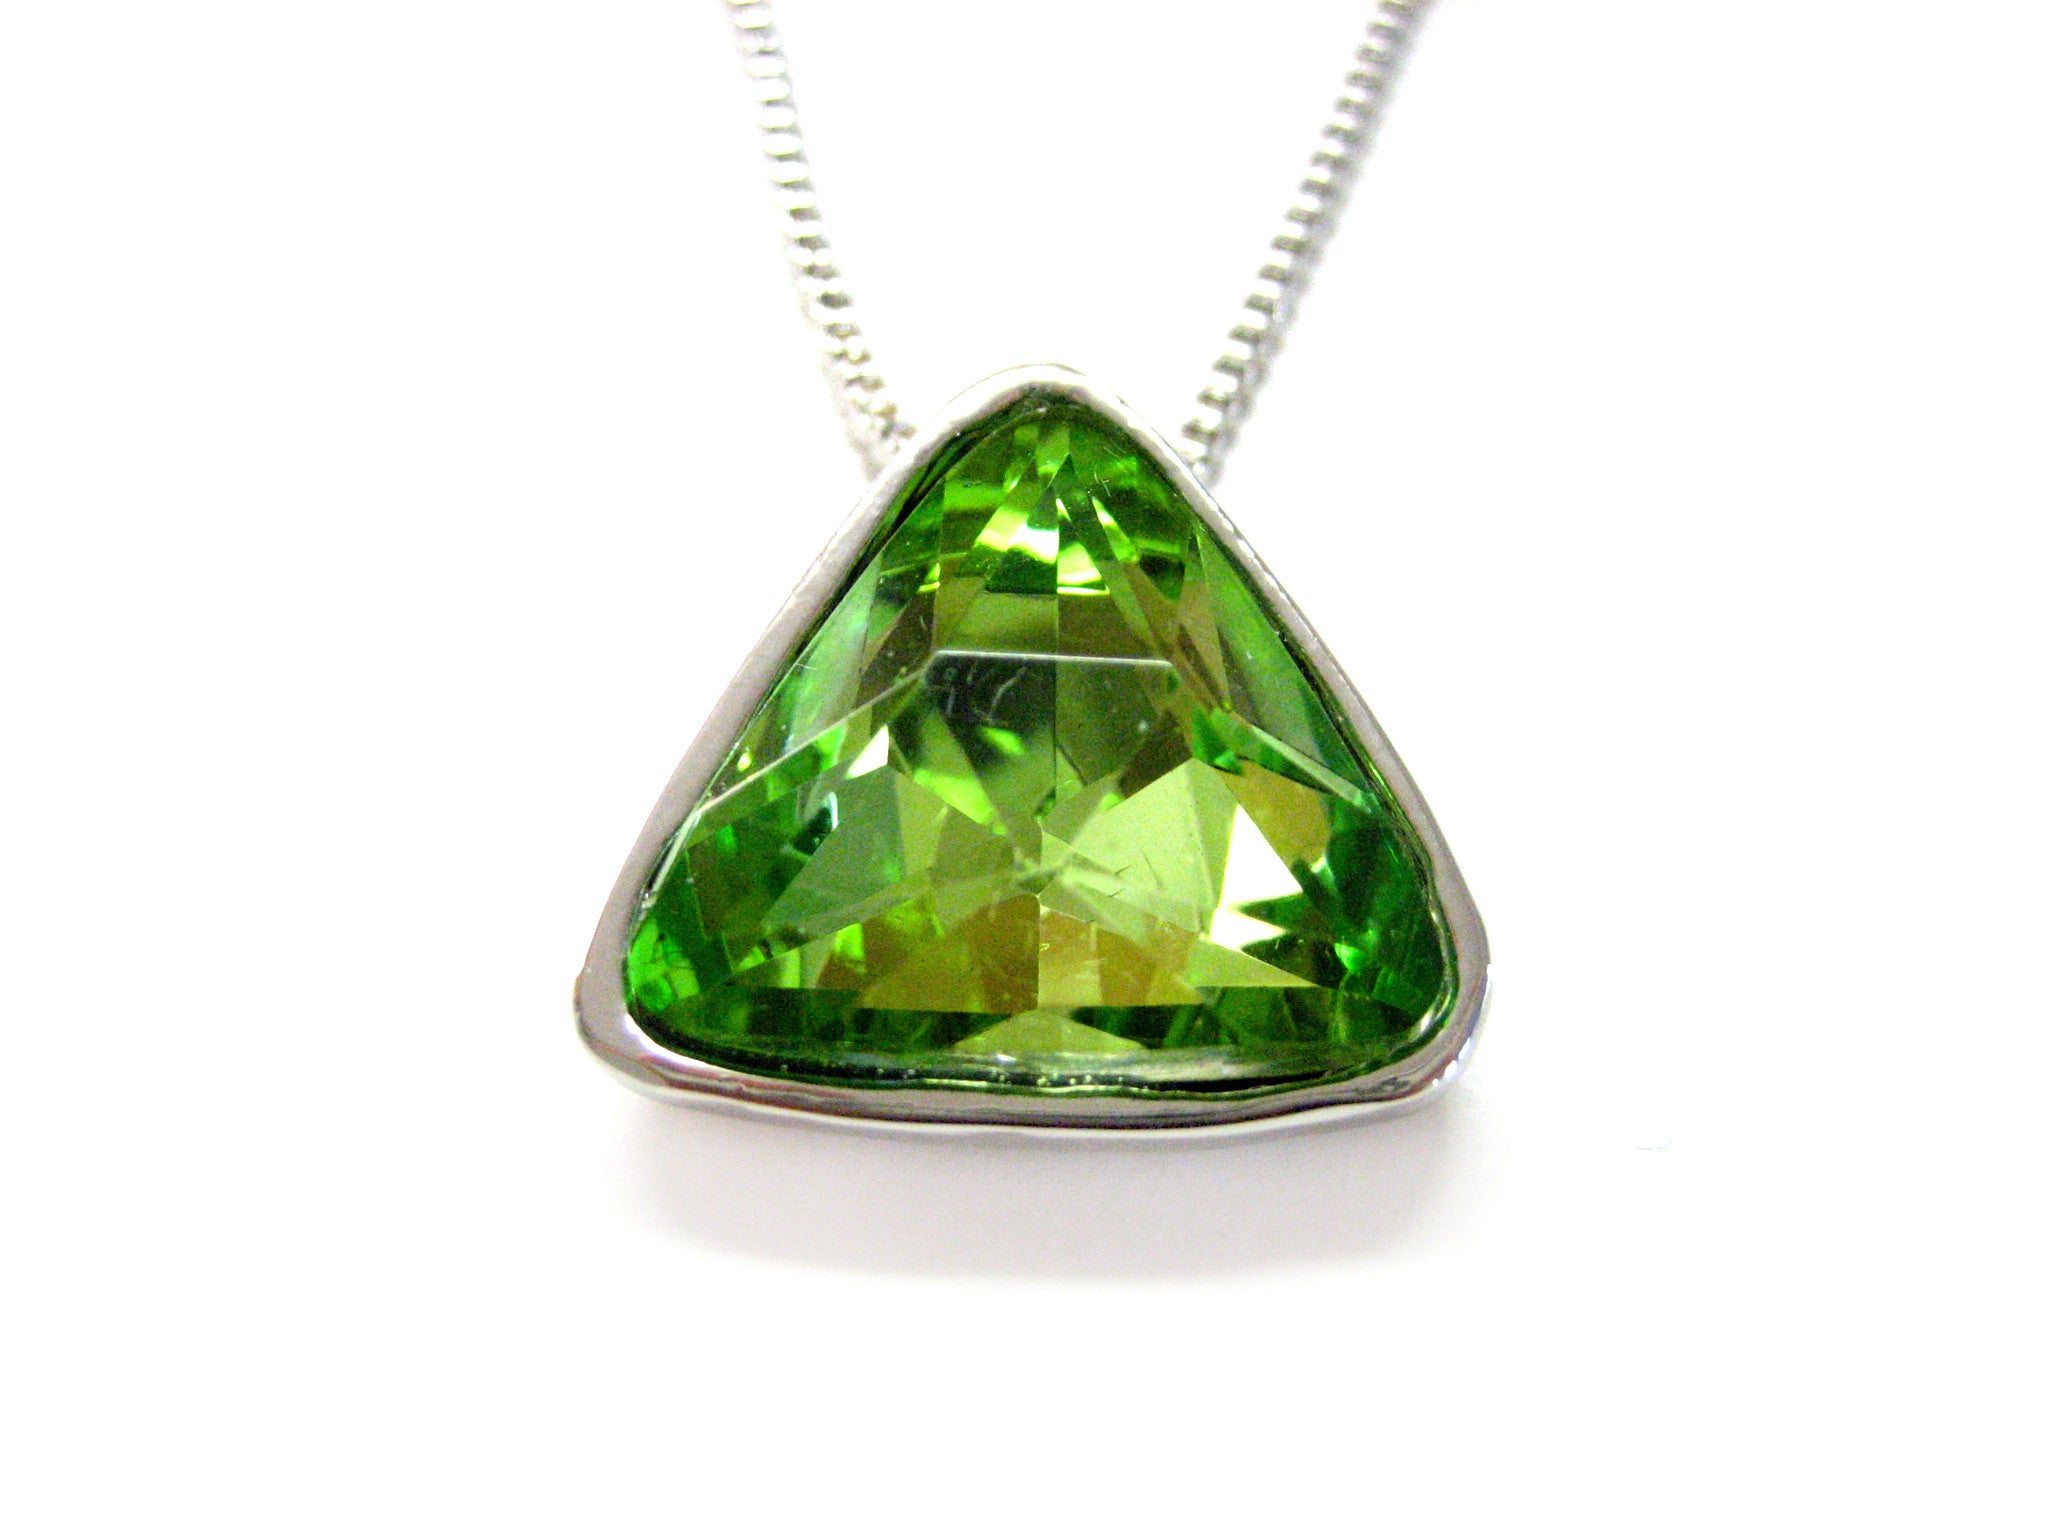 Green Crystal Pendant Necklace